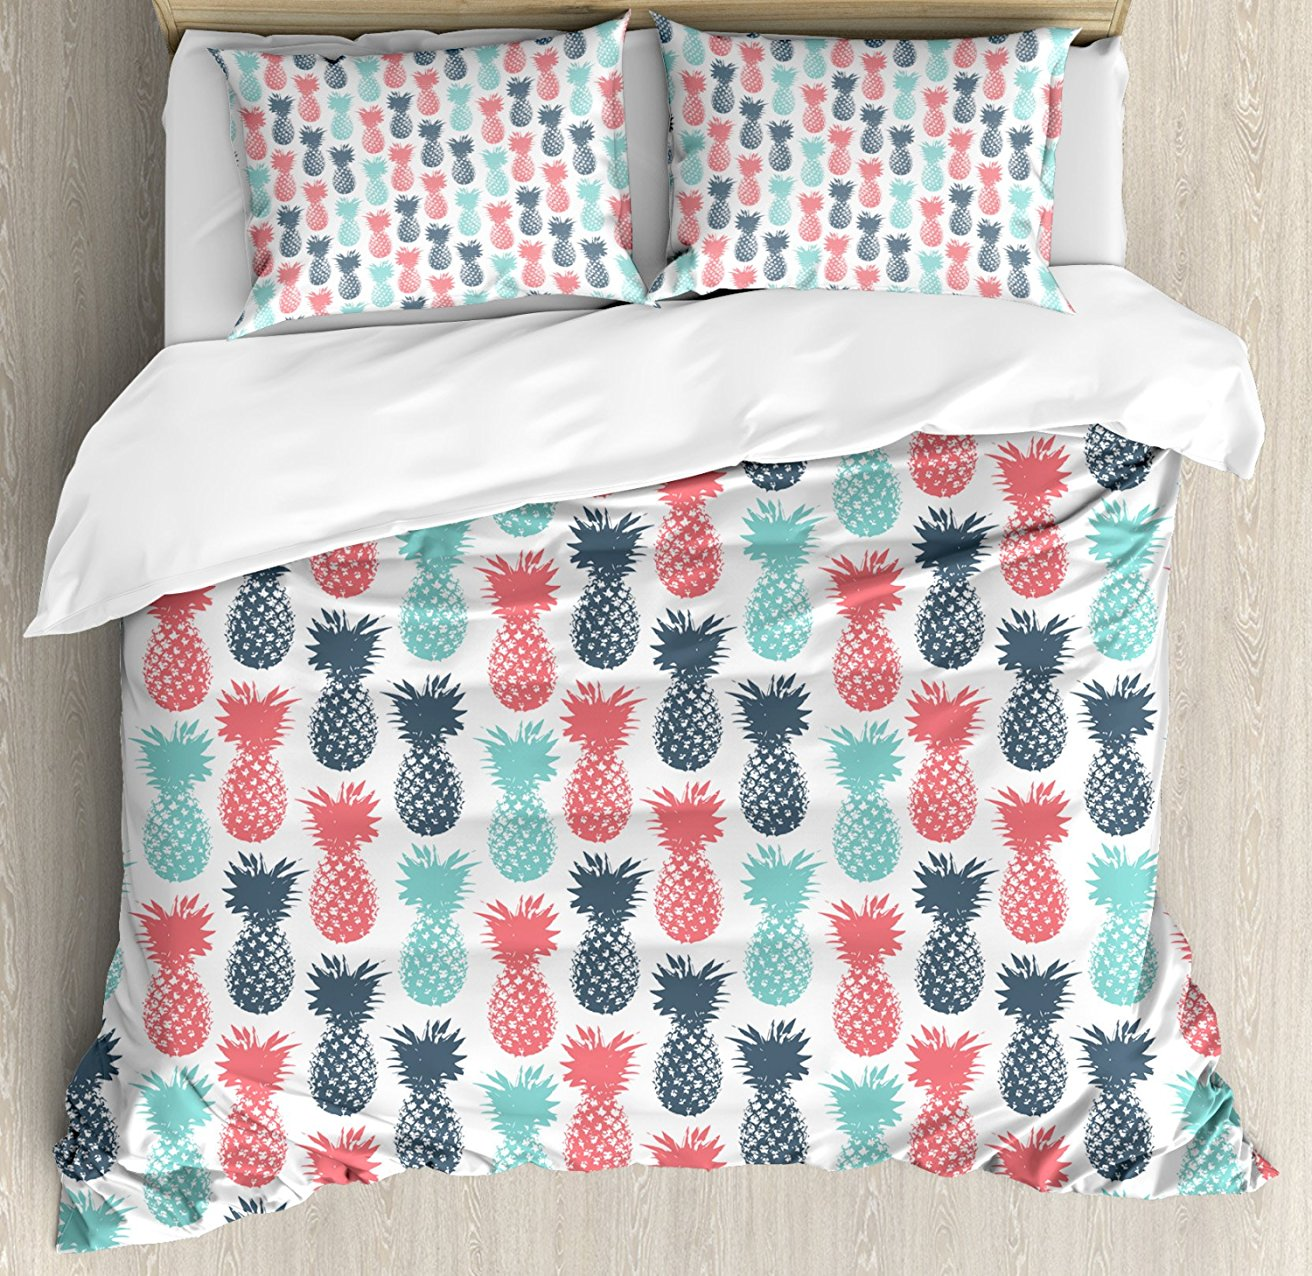 Pineapple Duvet Cover Set Island Pineapple Tropic Fruit Pattern Stamped Minimal Backdrop Pop Art 4 Piece Bedding Set